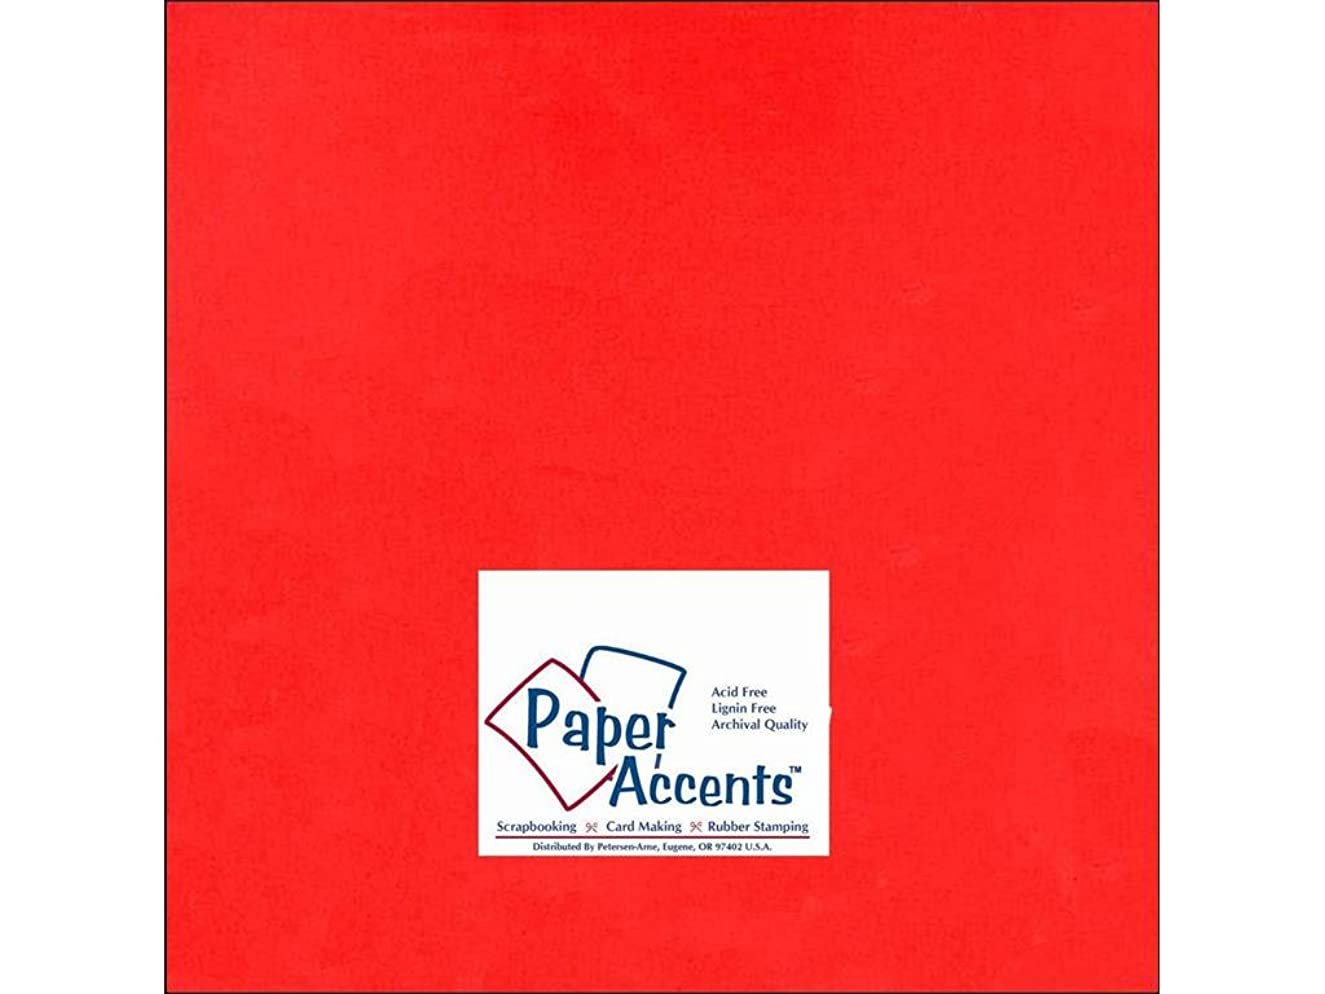 Accent Design Paper Accents Cdstk Smooth 12x12 65# Red